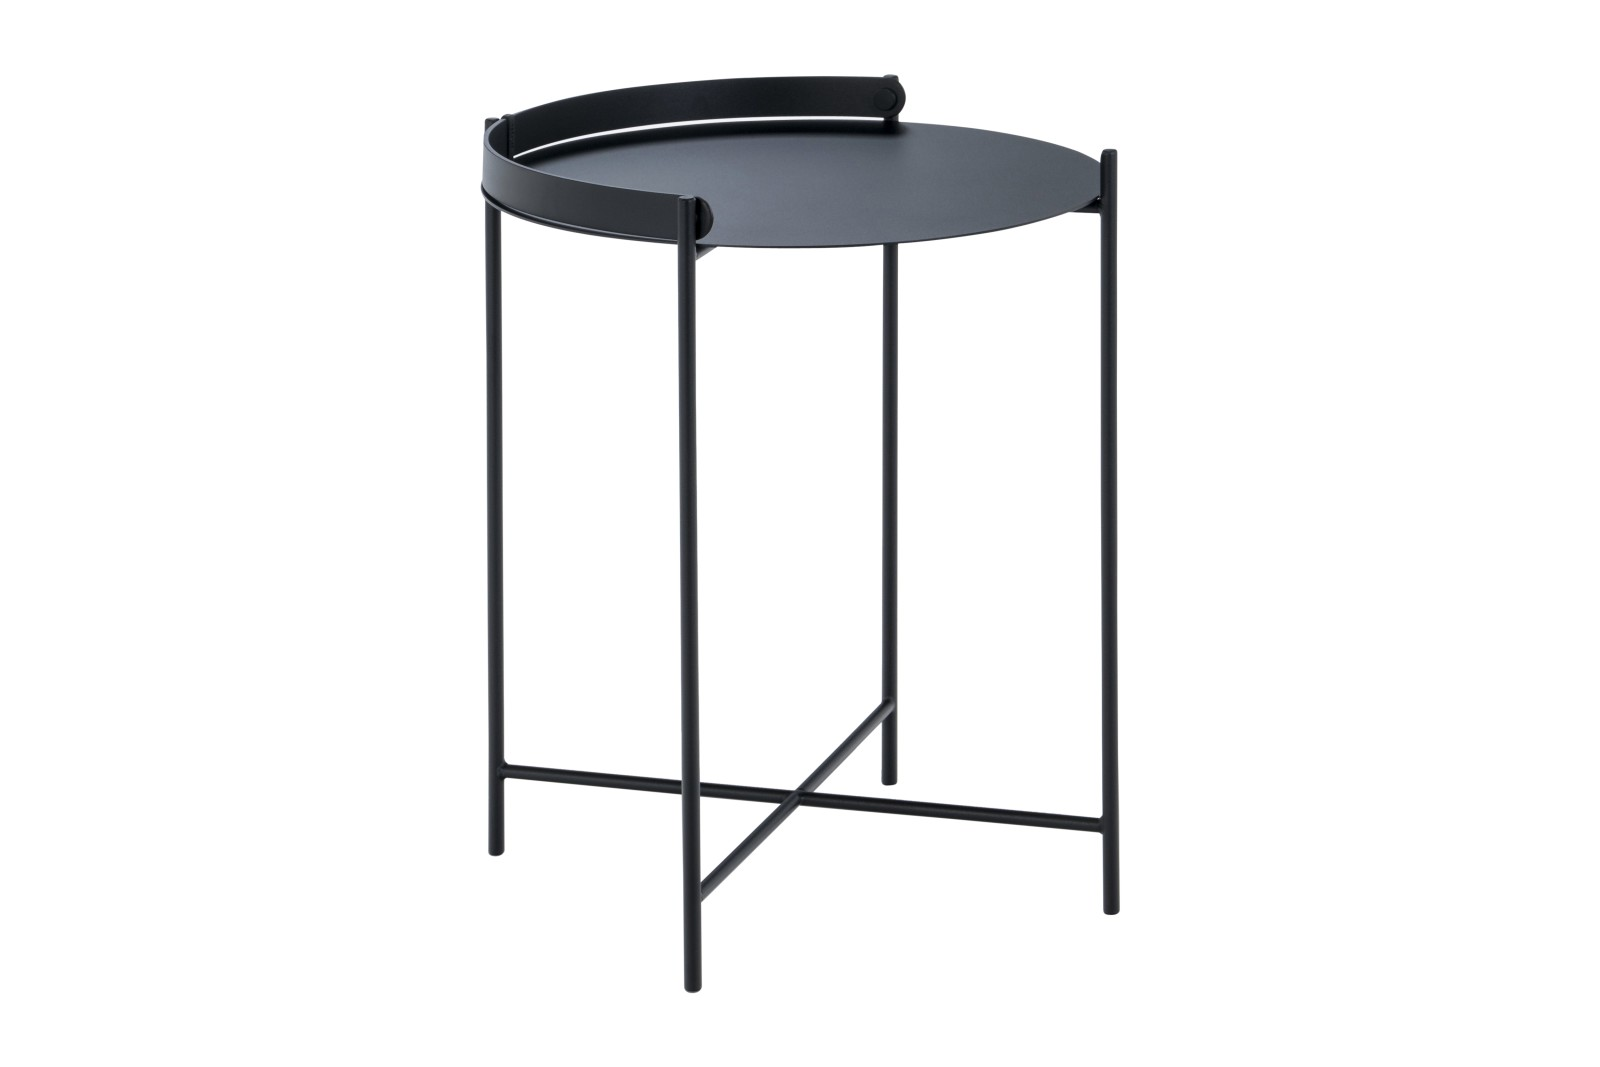 Edge Tray Table Black, 46cm